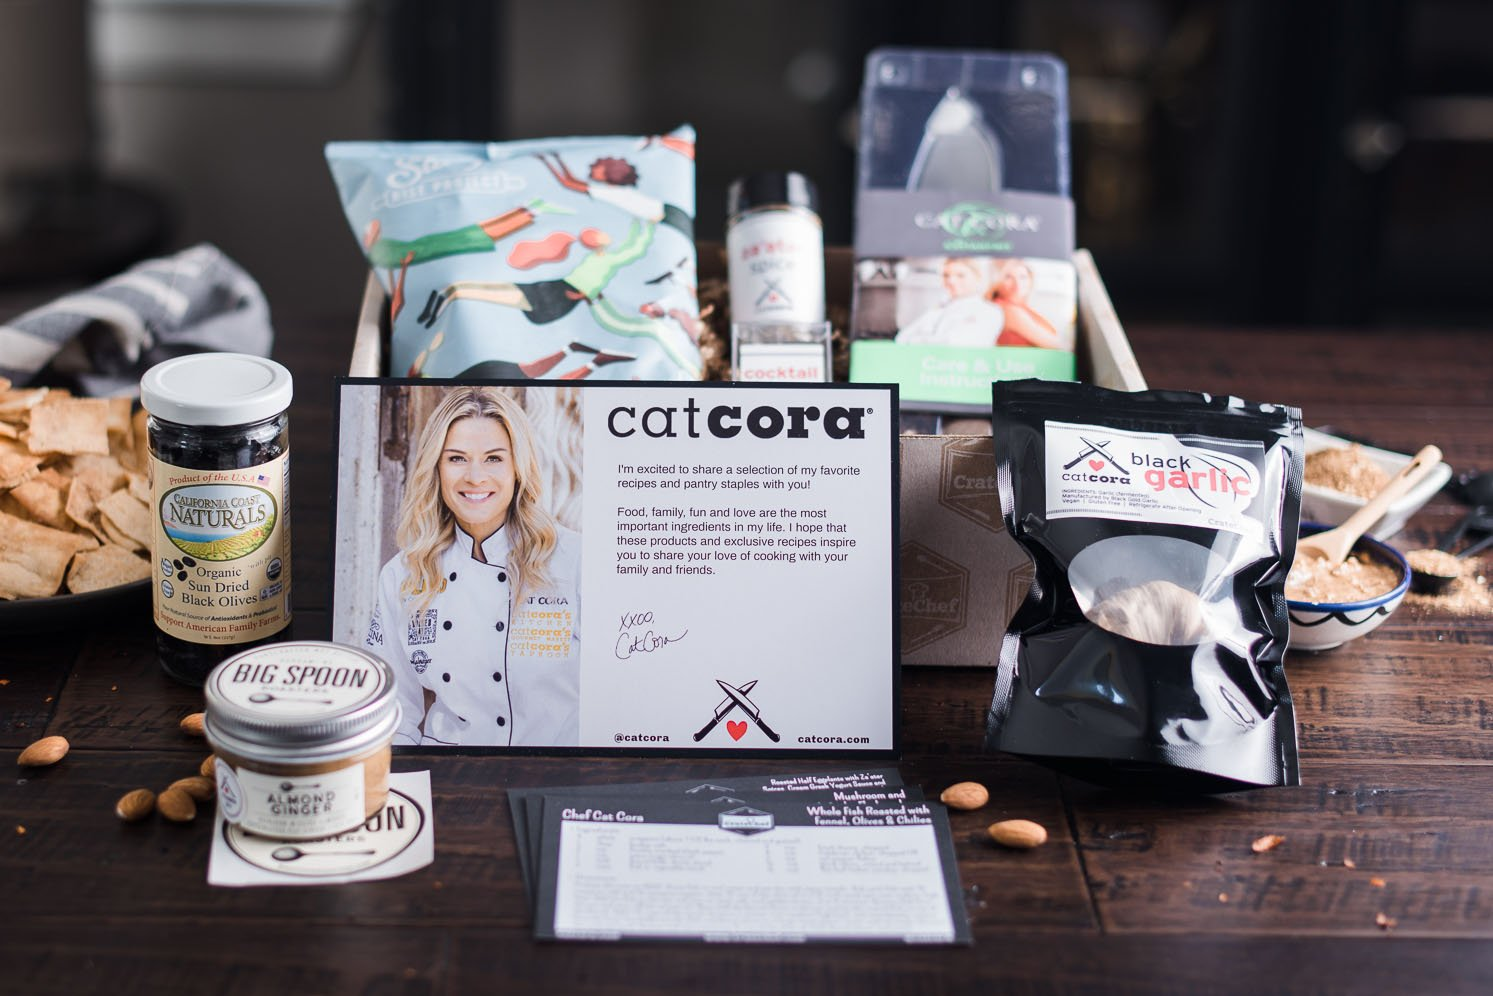 Cat Cora x CrateChef 1-Box Gift